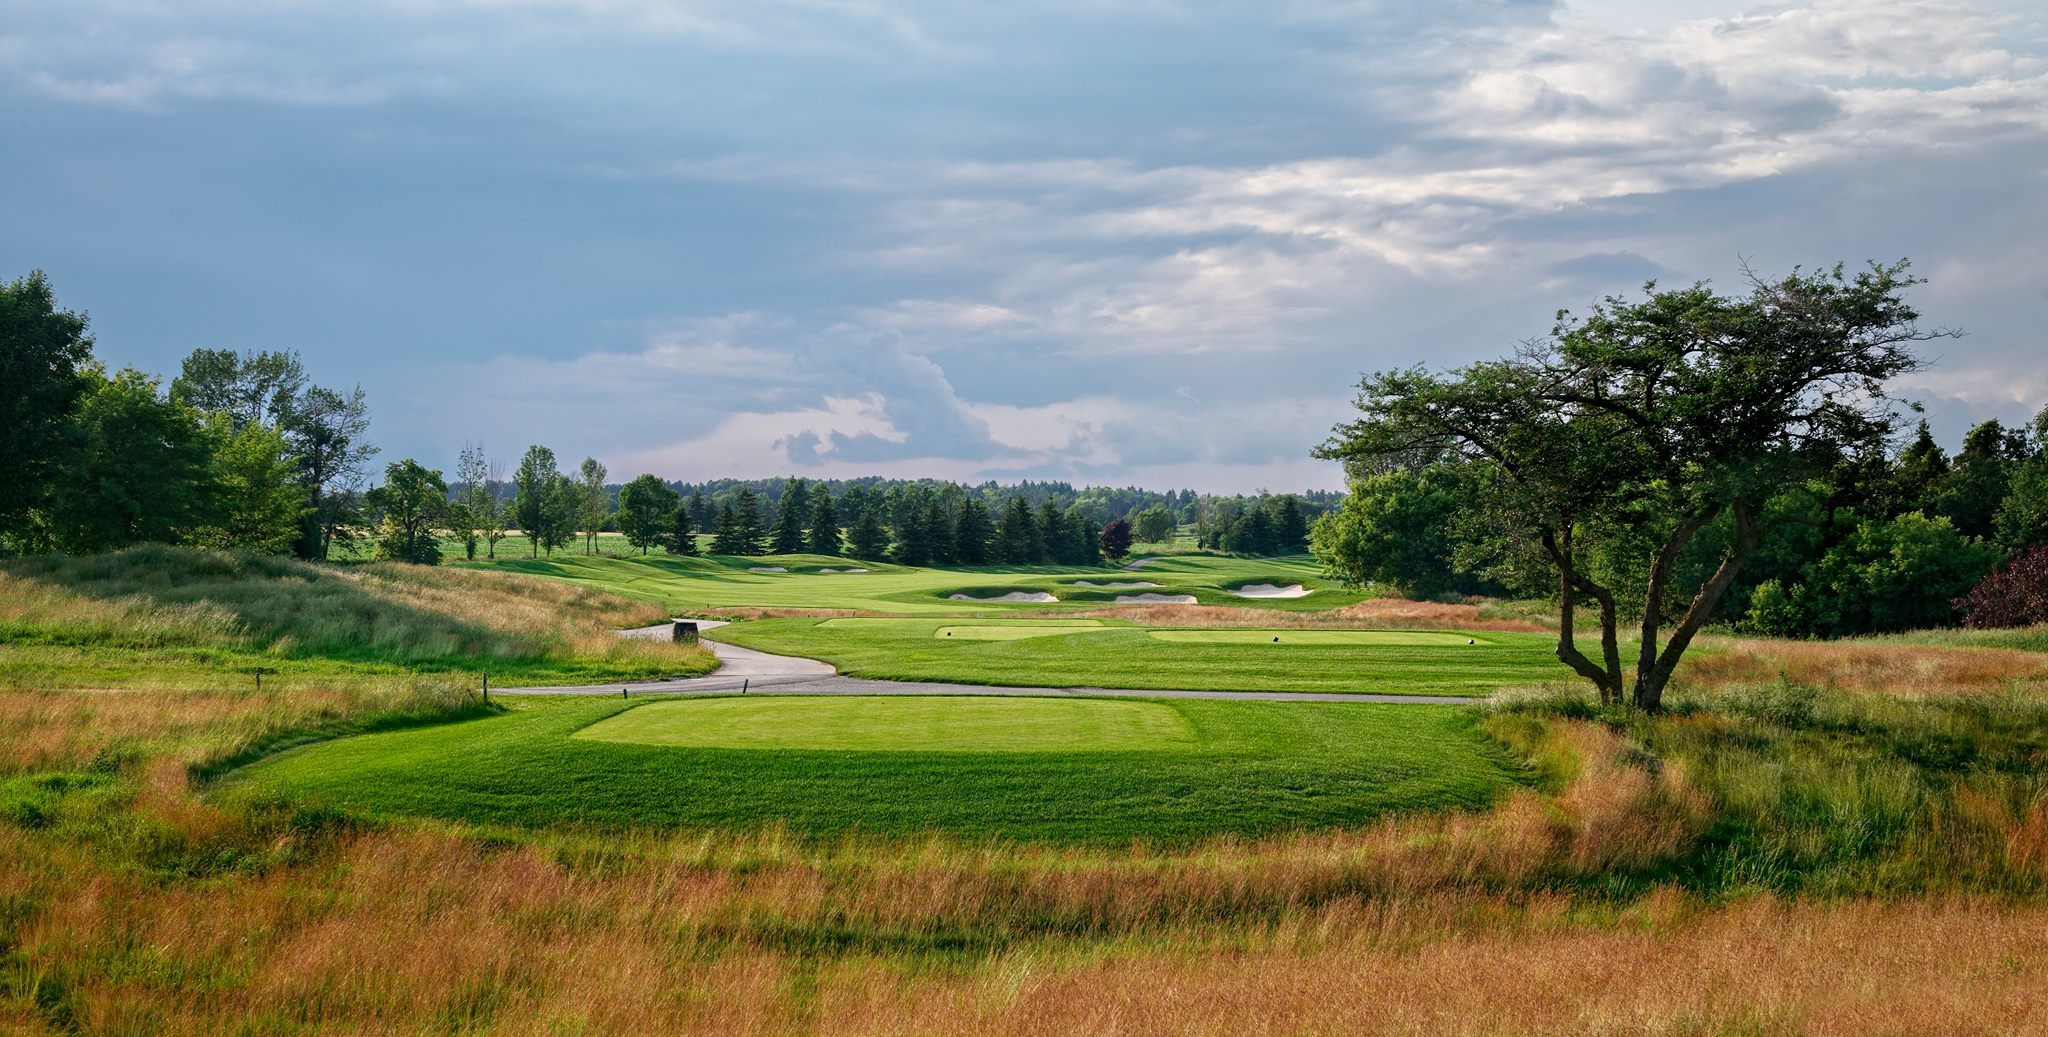 Angus glen golf club south course cover picture